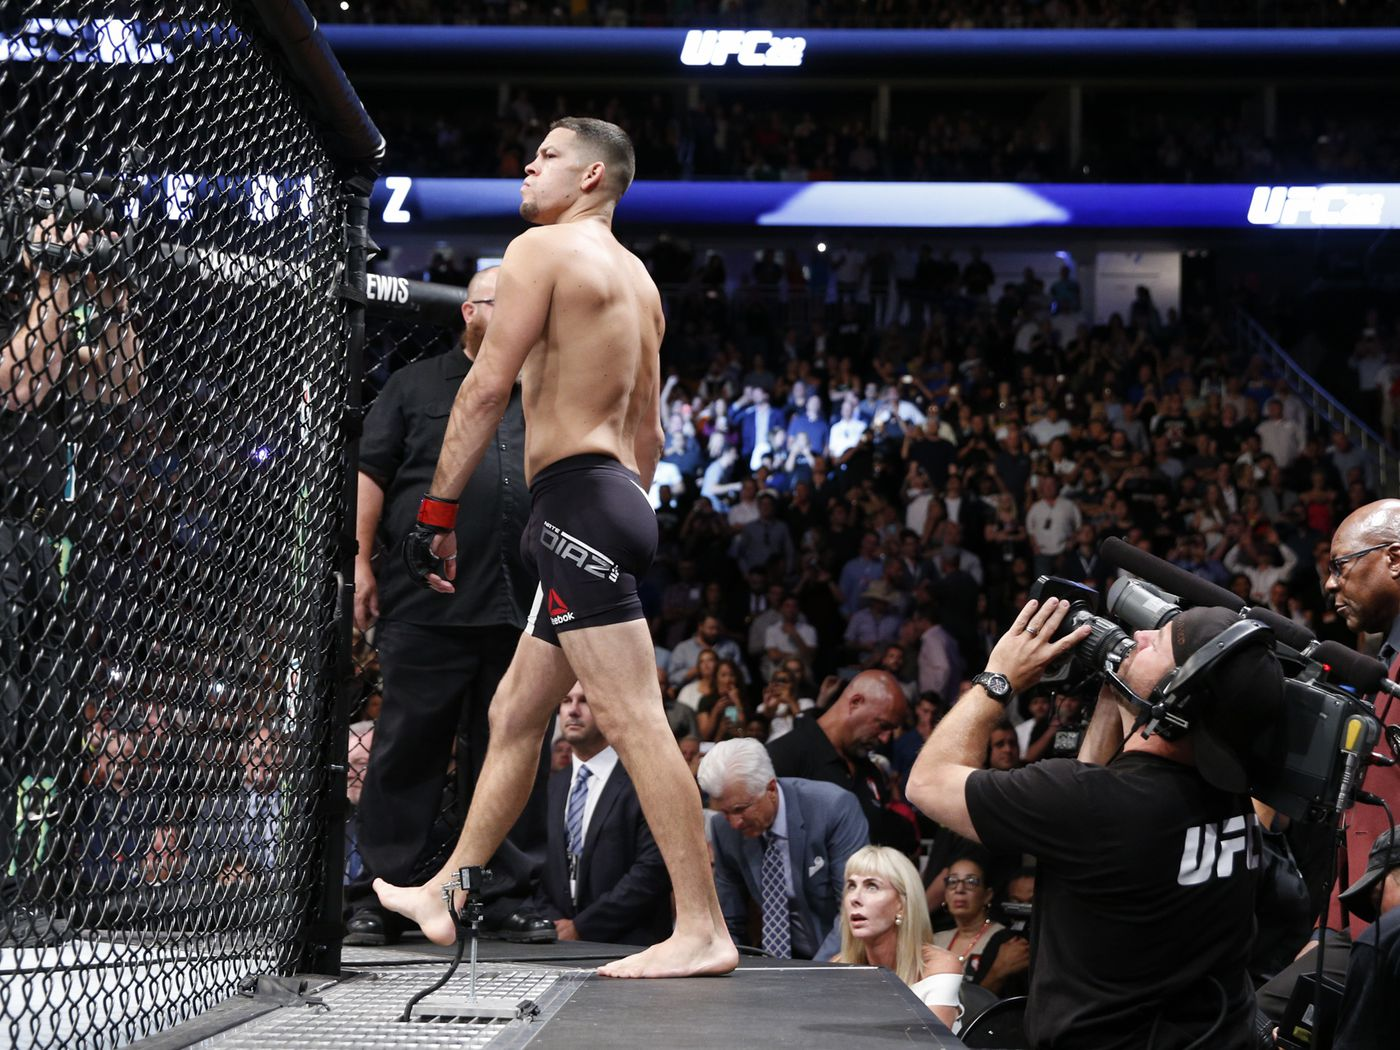 Nate Diaz talks about being 'ostracized' by UFC, claims Dustin Poirier  bailed on fight - MMA Fighting